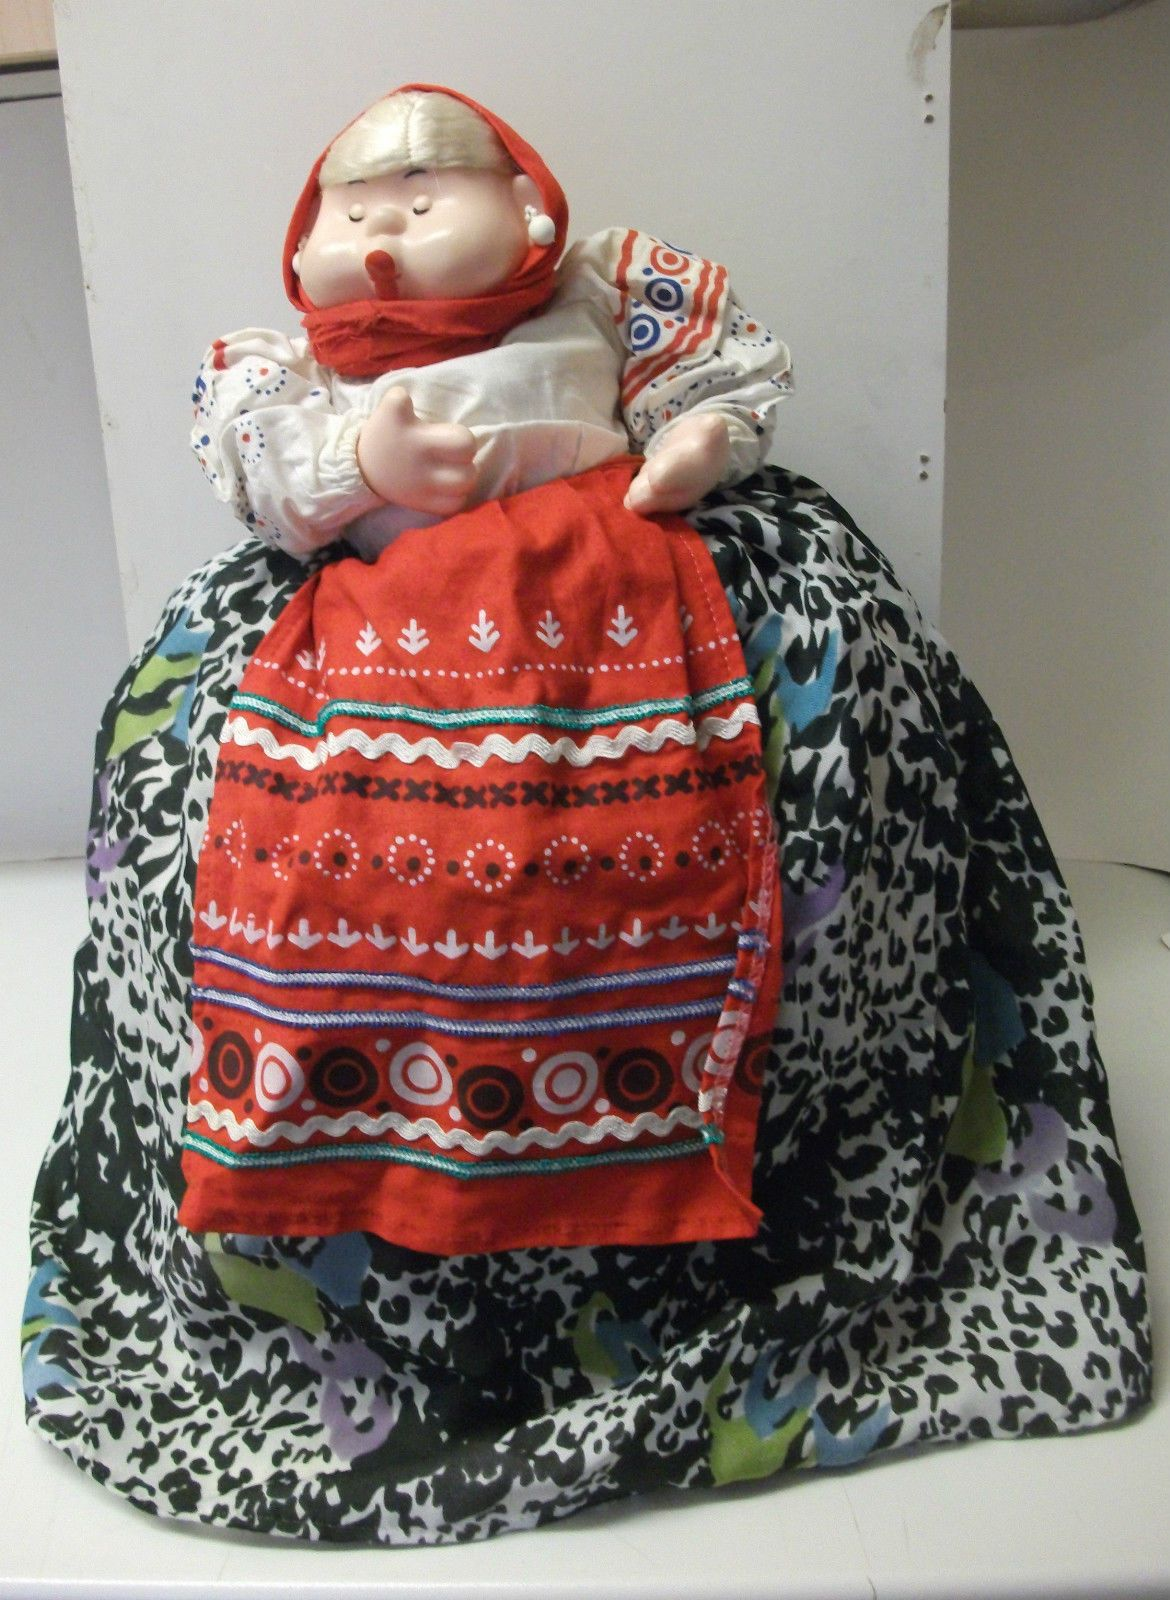 Vintage Russian Samovar Doll Tea Warmer Cozy Large | 15+5.99